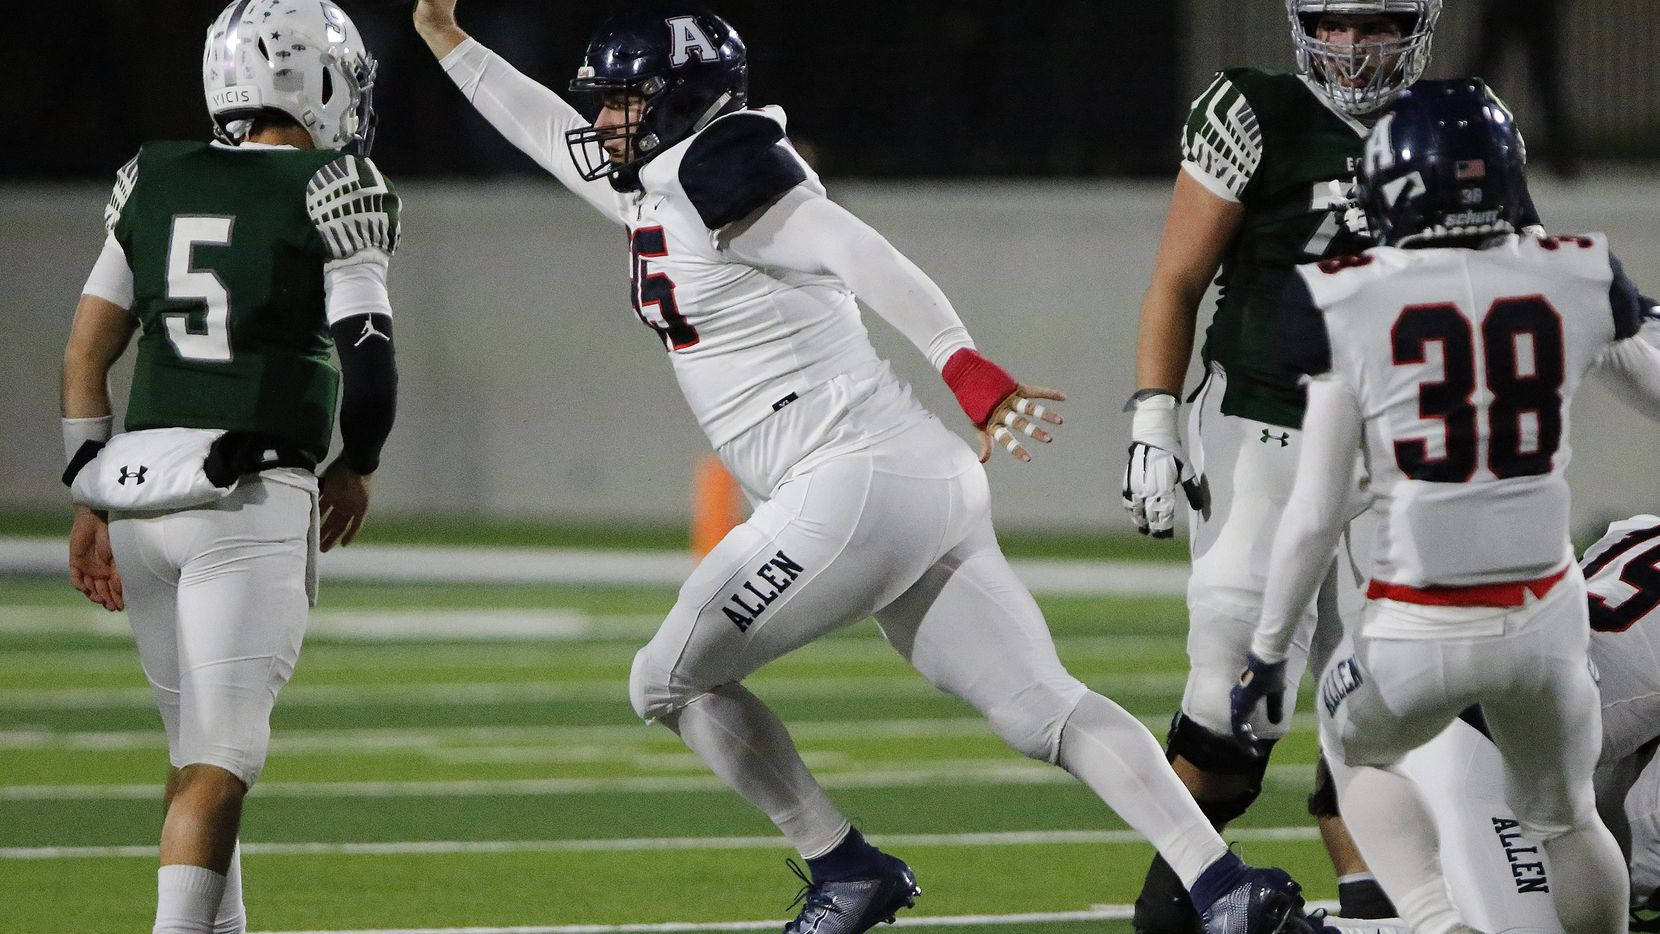 Allen High School defensive lineman Elijah Fisher (95) emerges with a fumble recovery during the first half as Prosper High School hosted Allen High School in a District 9-6A football game at Children's Health Stadium in Prosper on Friday night, Novembrer 1, 2019. (Stewart F. House/Special Contributor)